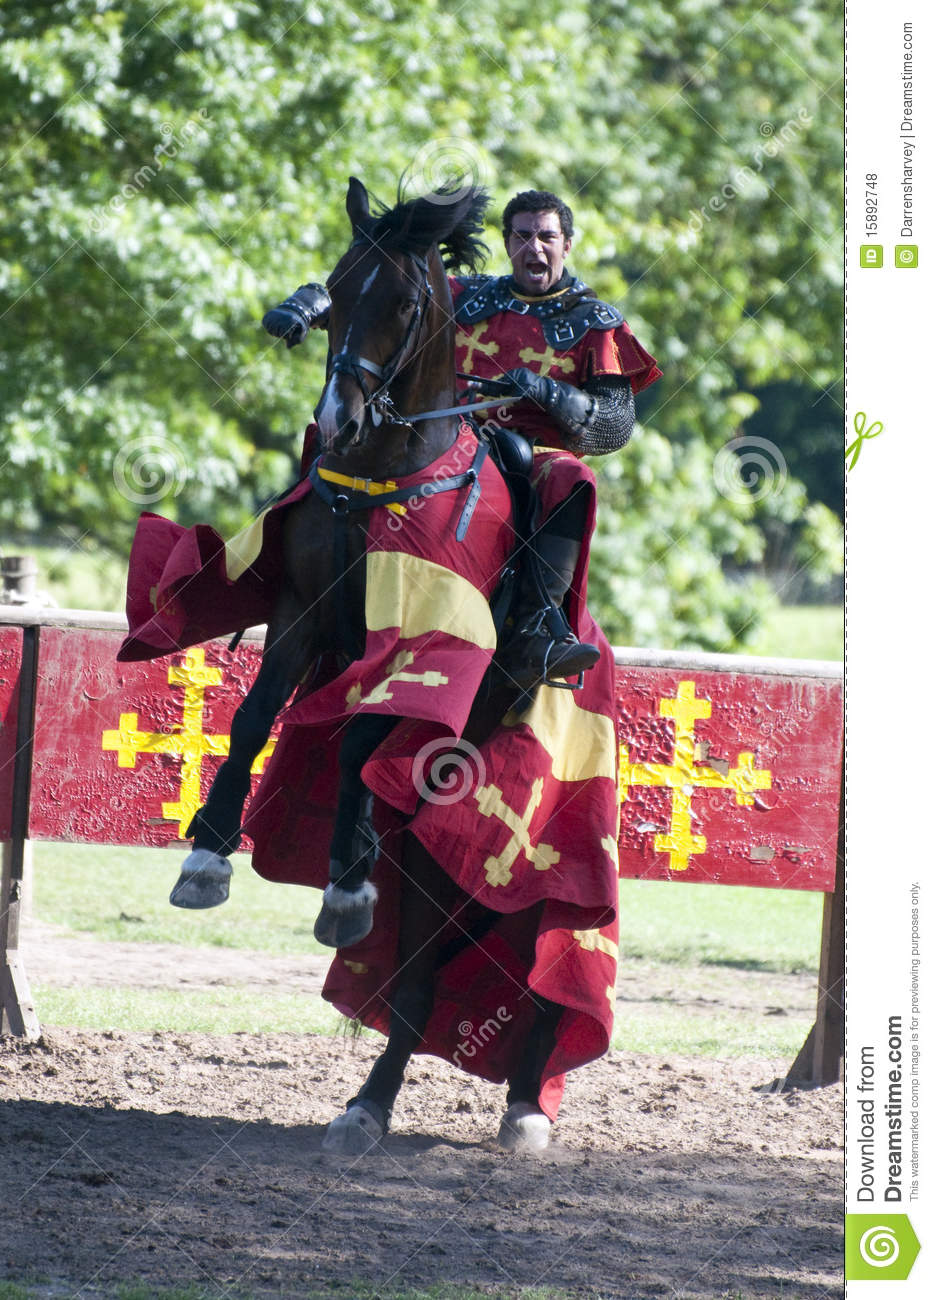 Dreamstime Images Victorious Knight On Horseback At Warwick Castle Editorial